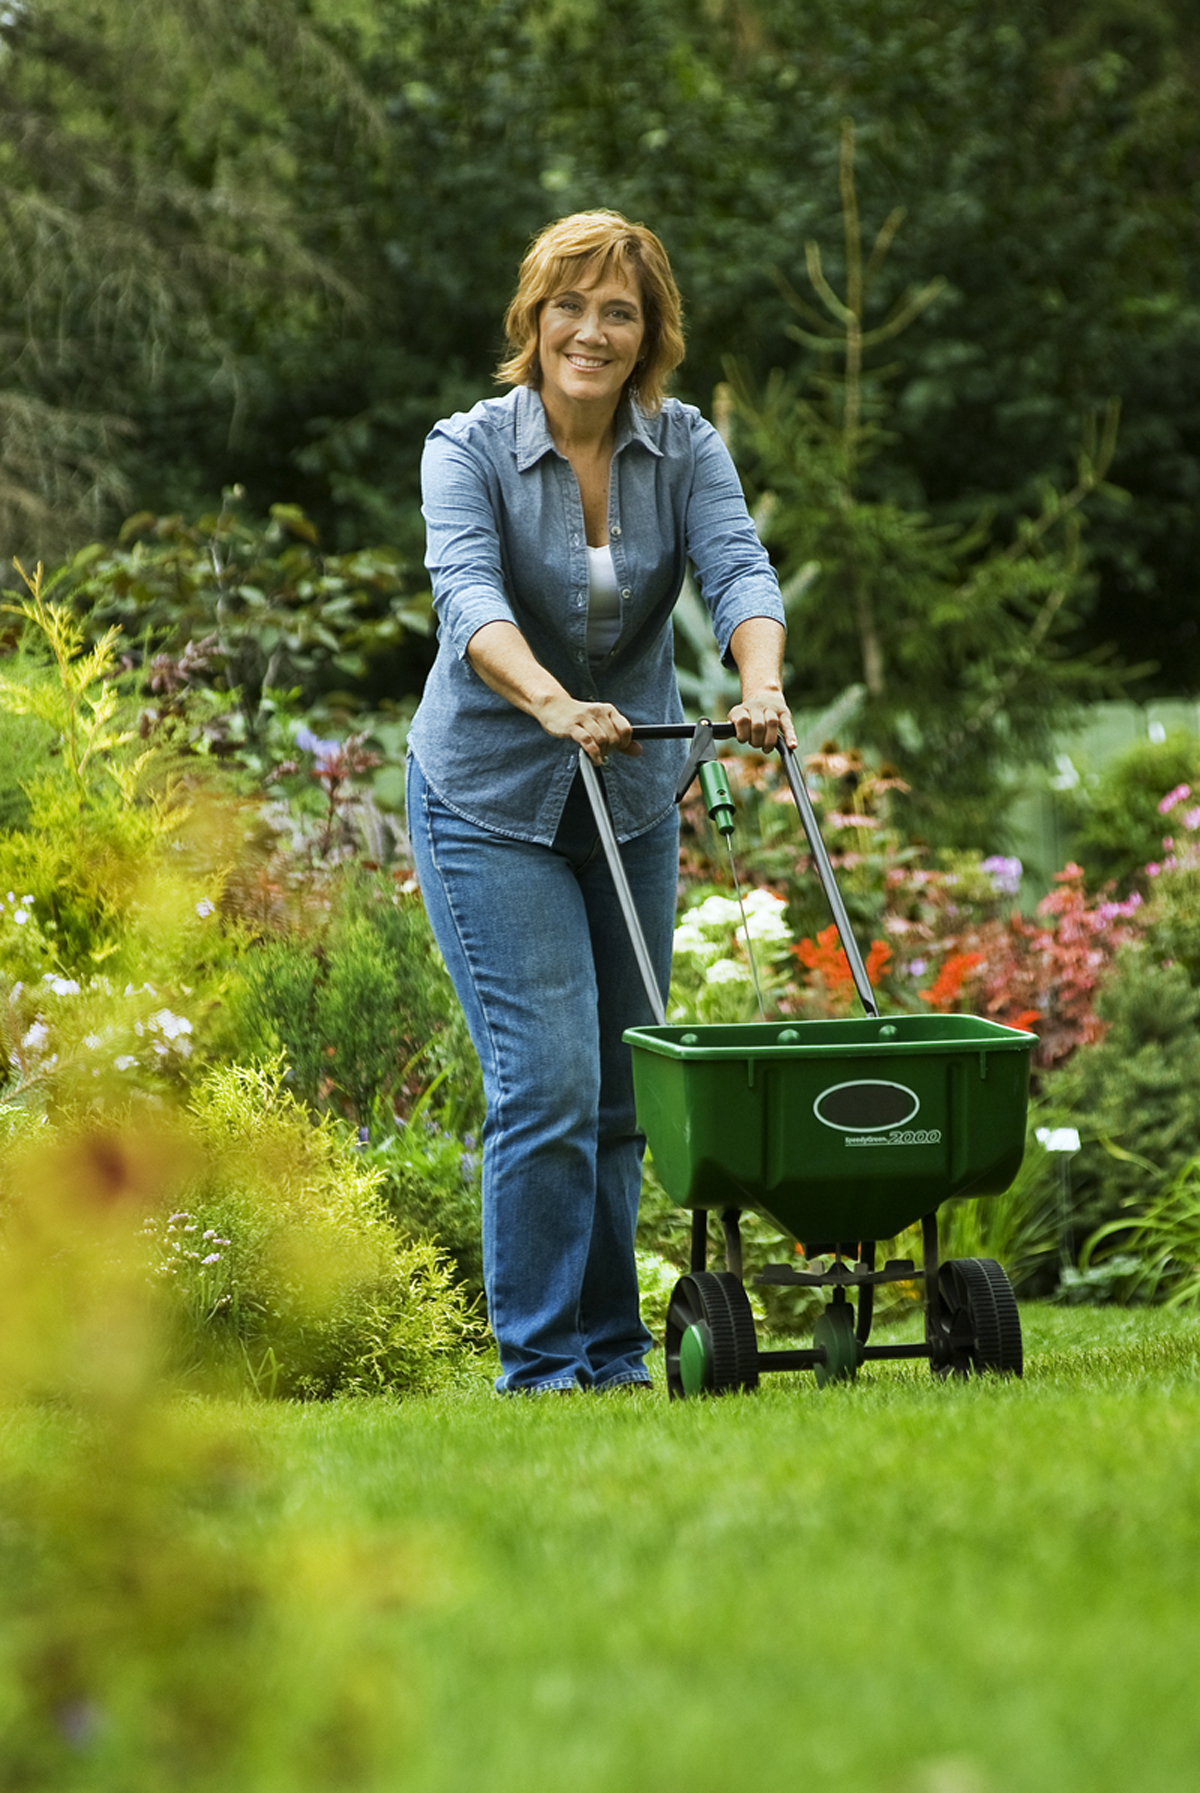 Melinda Myers Fertilizing with a Spreader